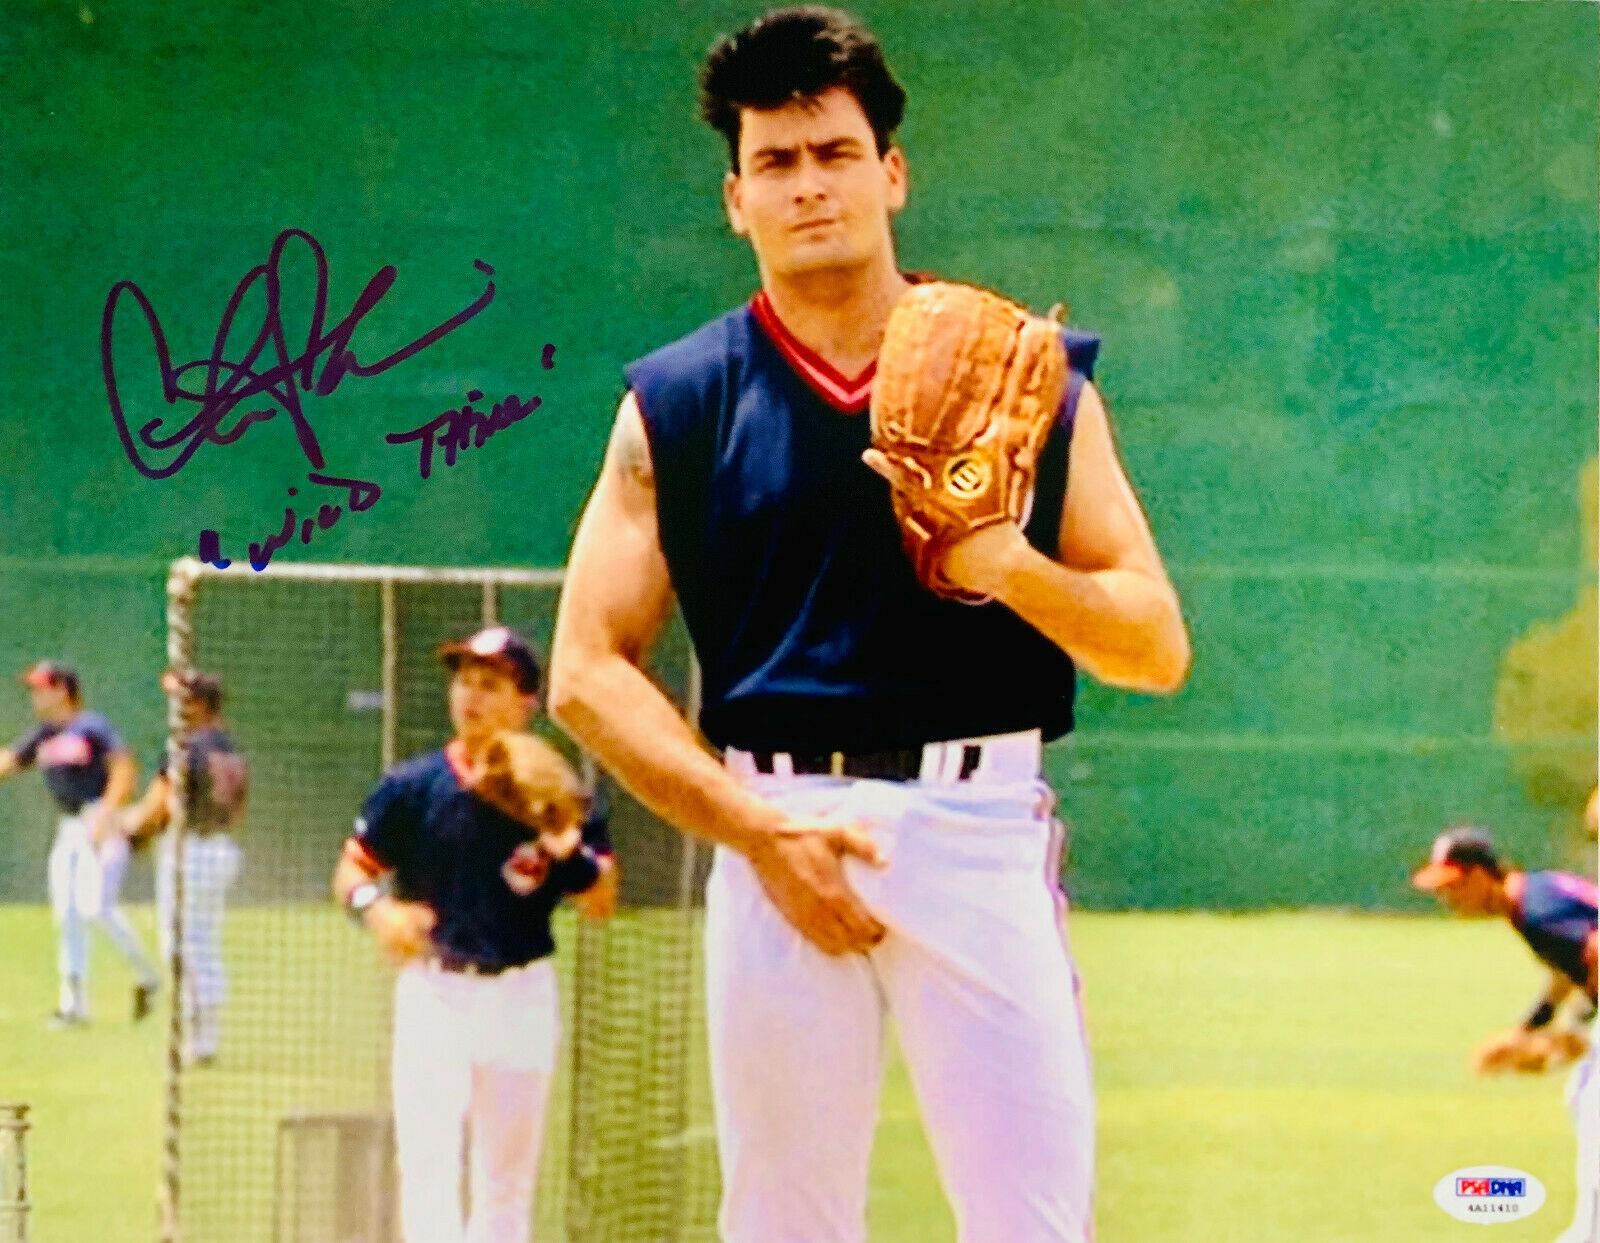 sheen autographed 11x14 major league thing